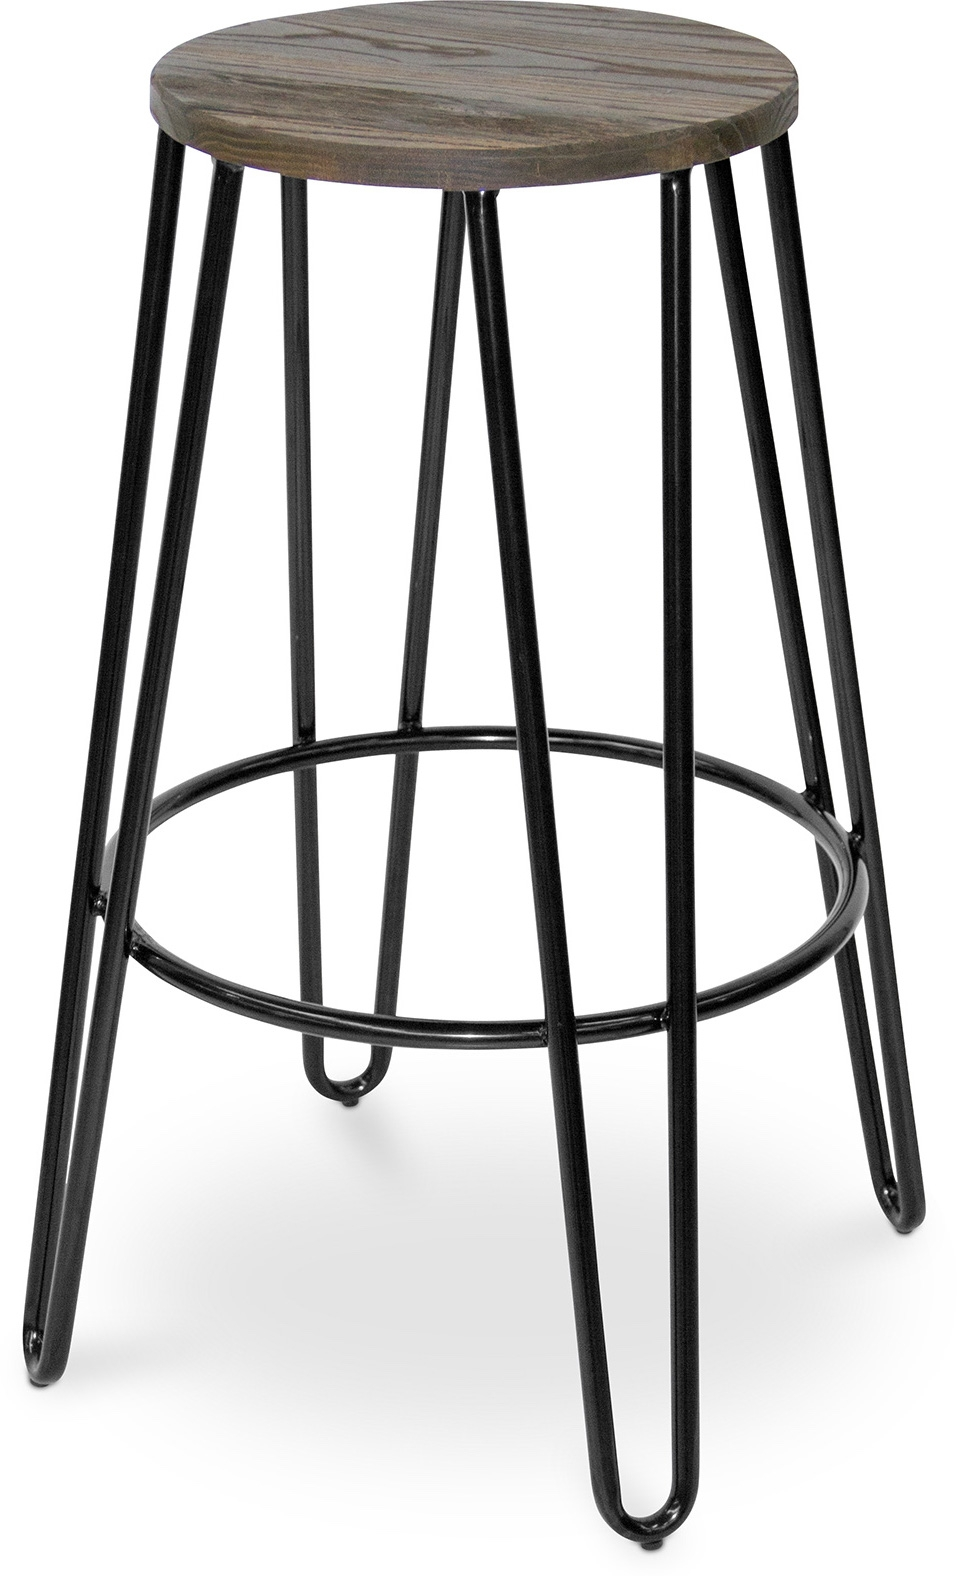 tabouret m tal noir et assise bois fonc coffee. Black Bedroom Furniture Sets. Home Design Ideas